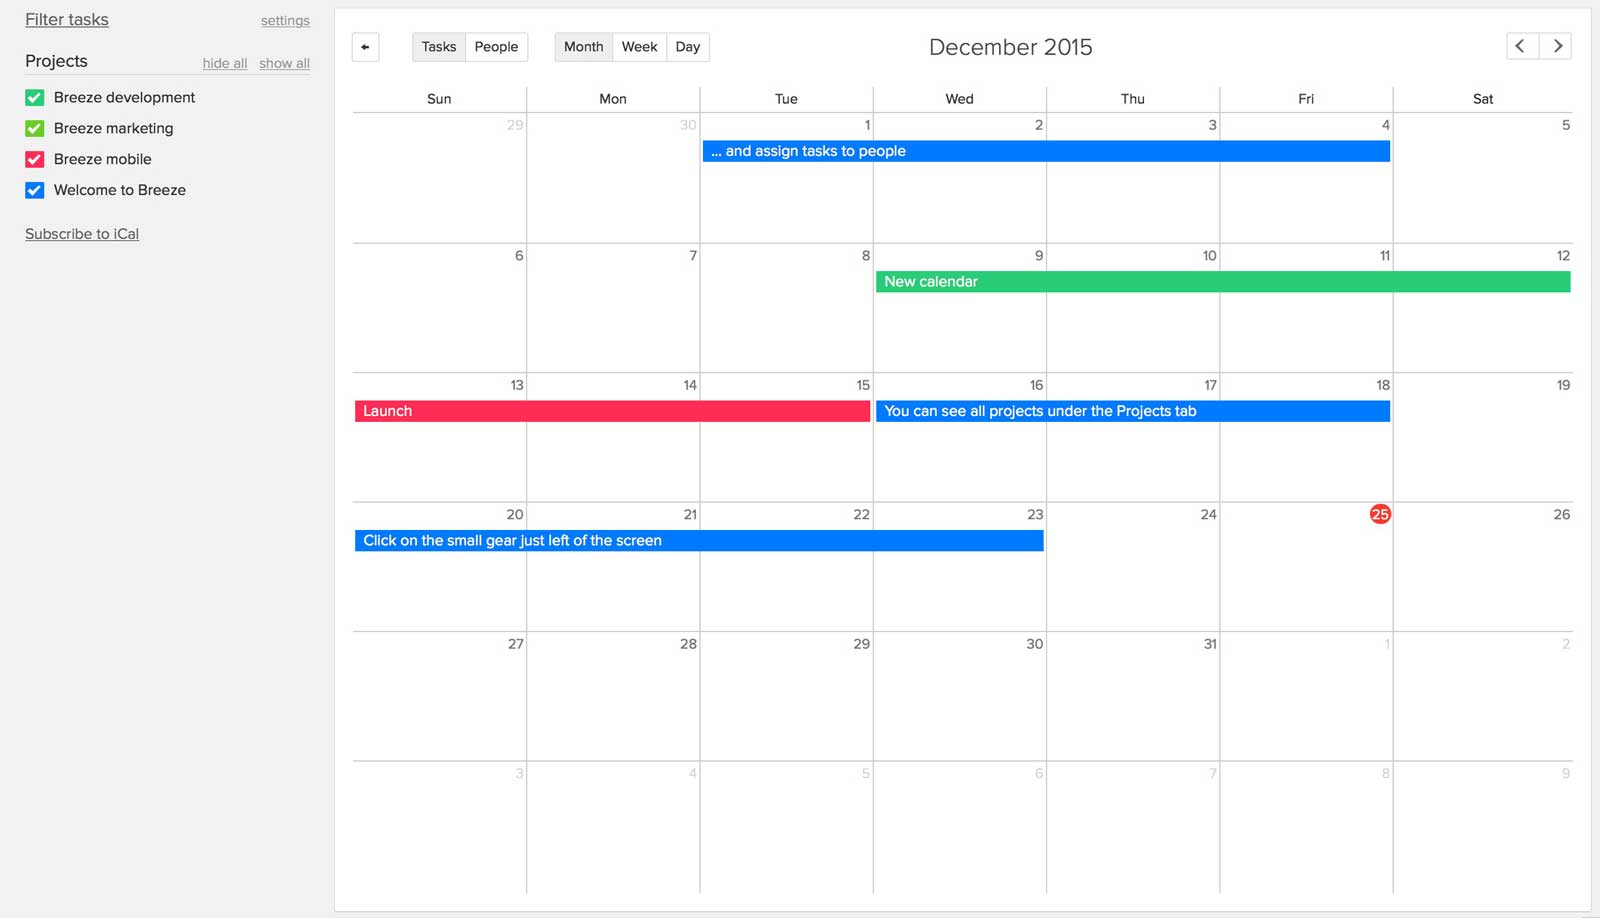 project management software and collaboration tool  calendars and resource management